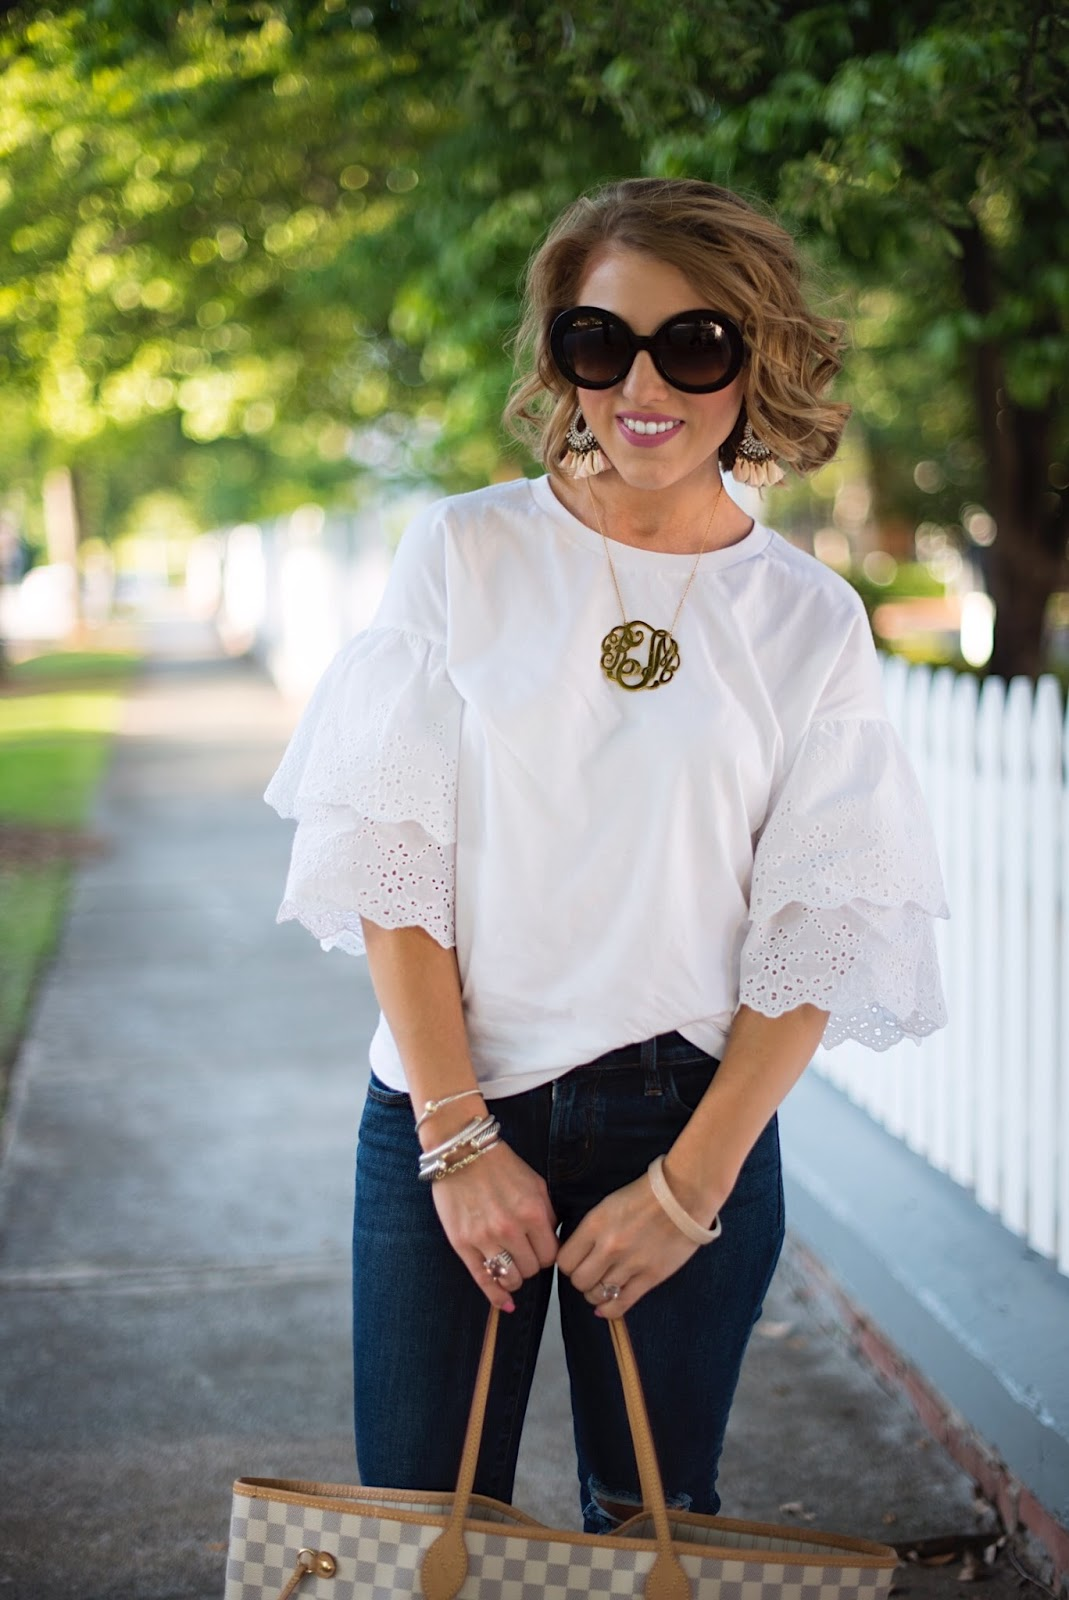 Eyelet, Ruffle Sleeves - Click through to see more on Something Delightful.